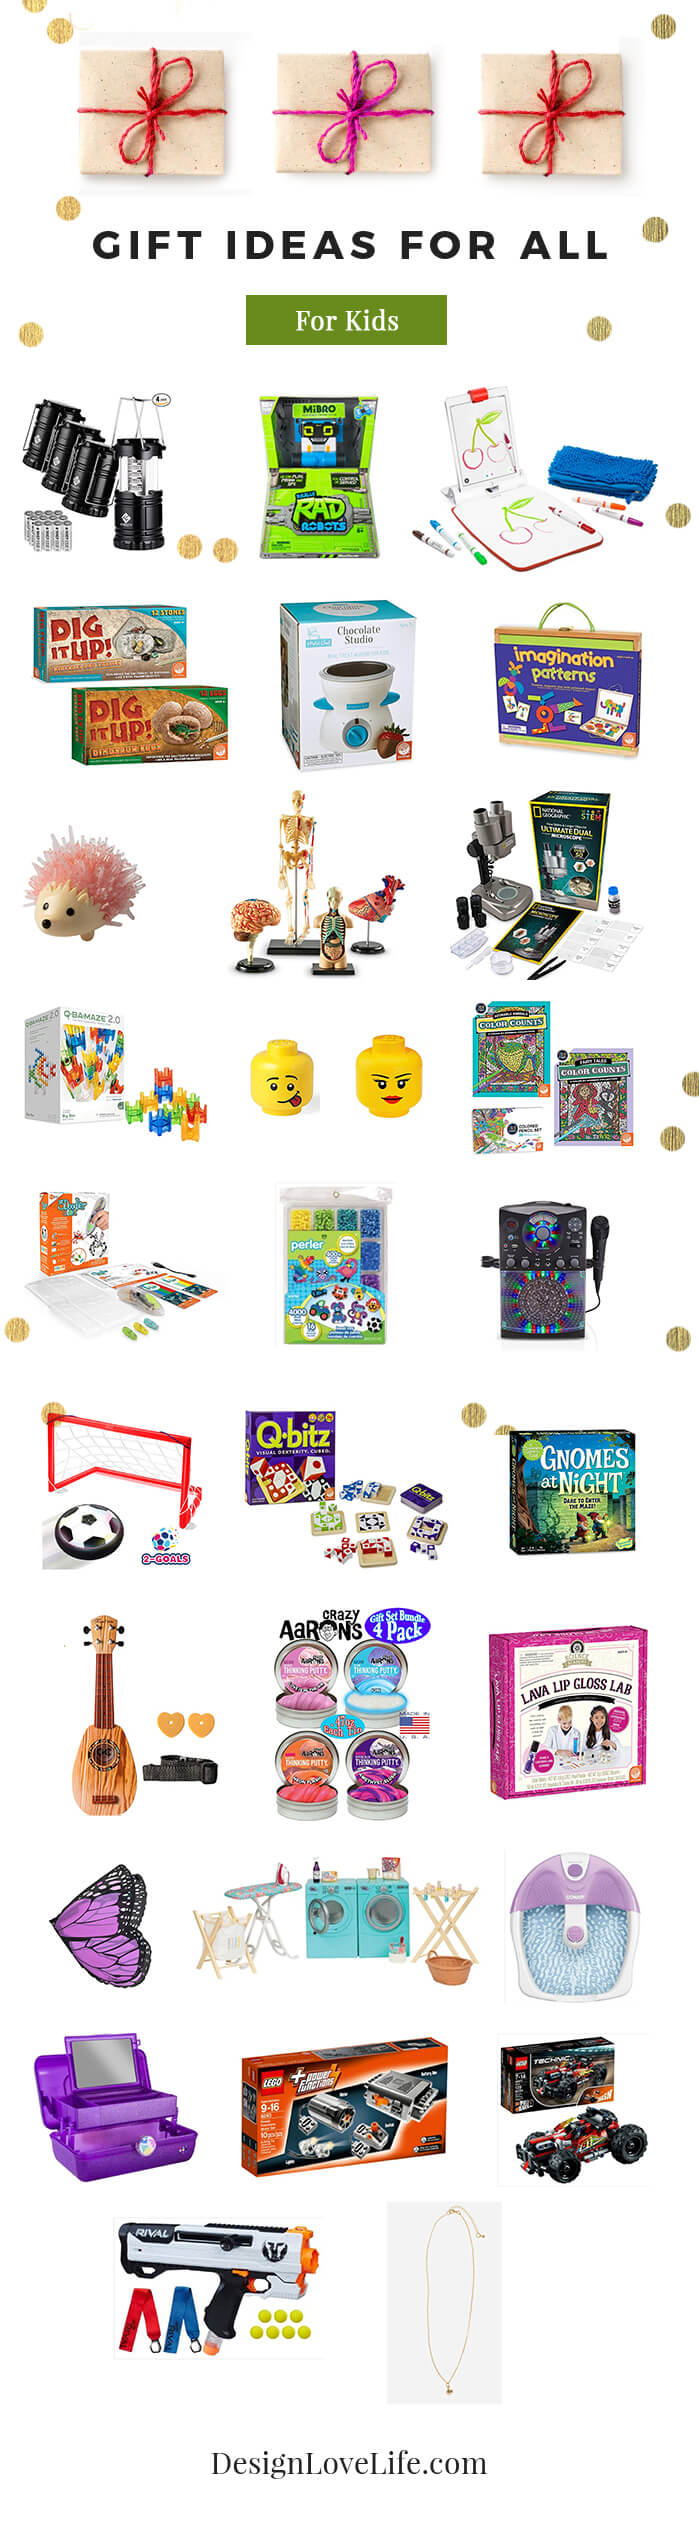 Gift Ideas For Kids - Design Love Life Blog